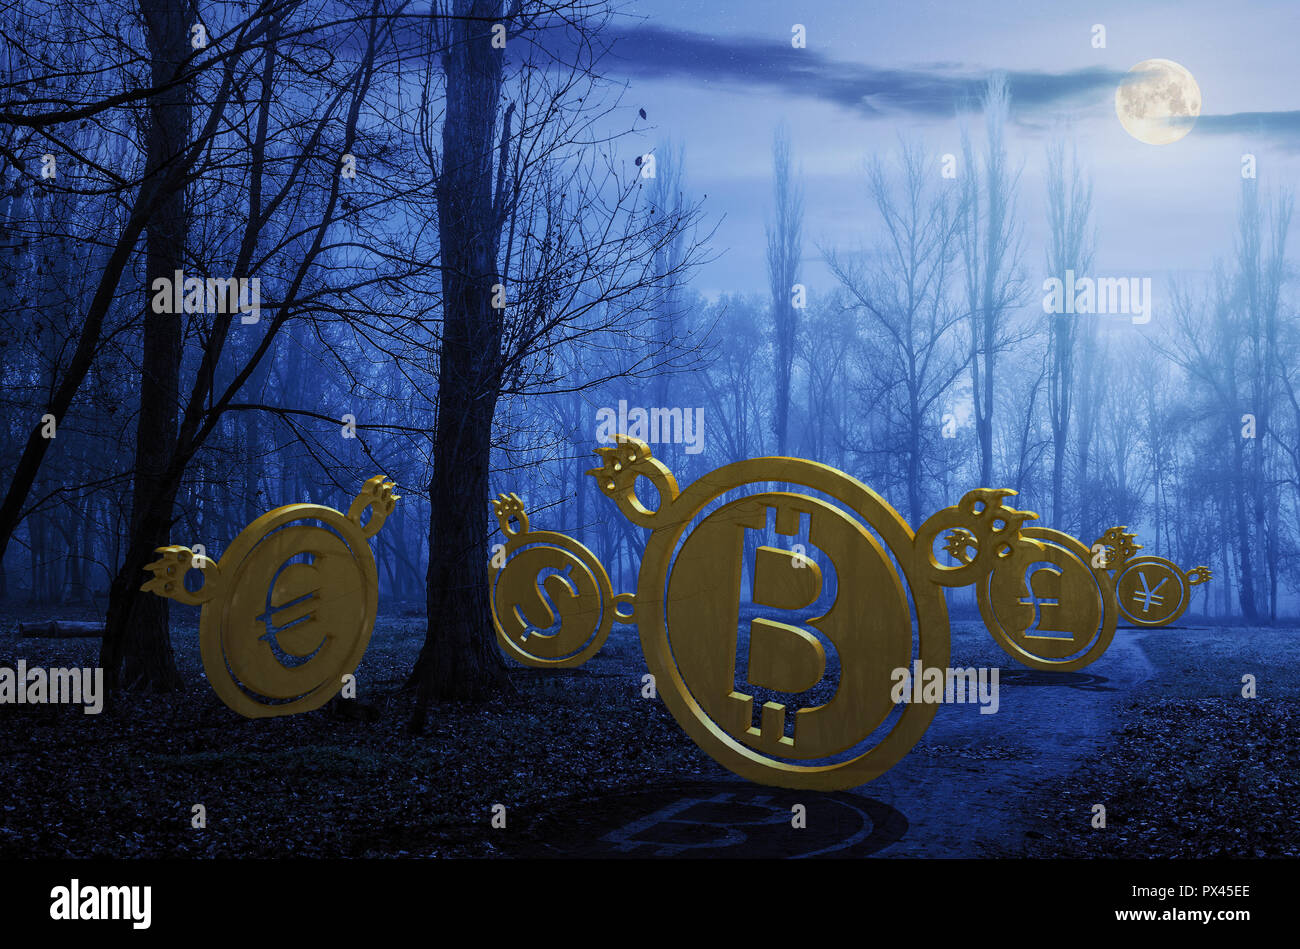 currency bears on the path through foggy forest at night in full moon light. crypto or trade Halloween concept. 3d illustration - Stock Image